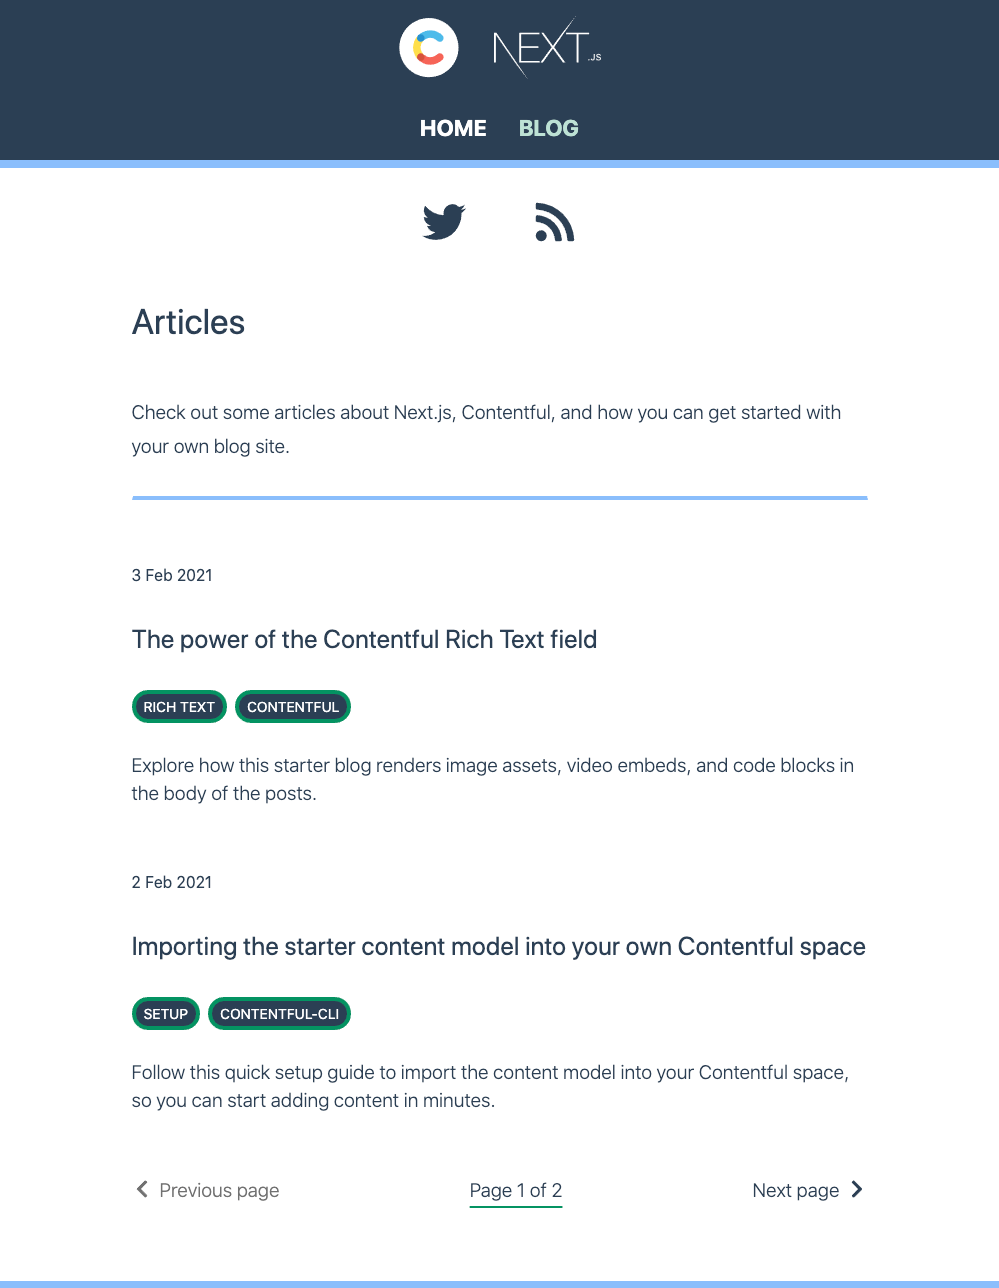 Screenshot of the blog index from the Next.js and Contentful starter example website